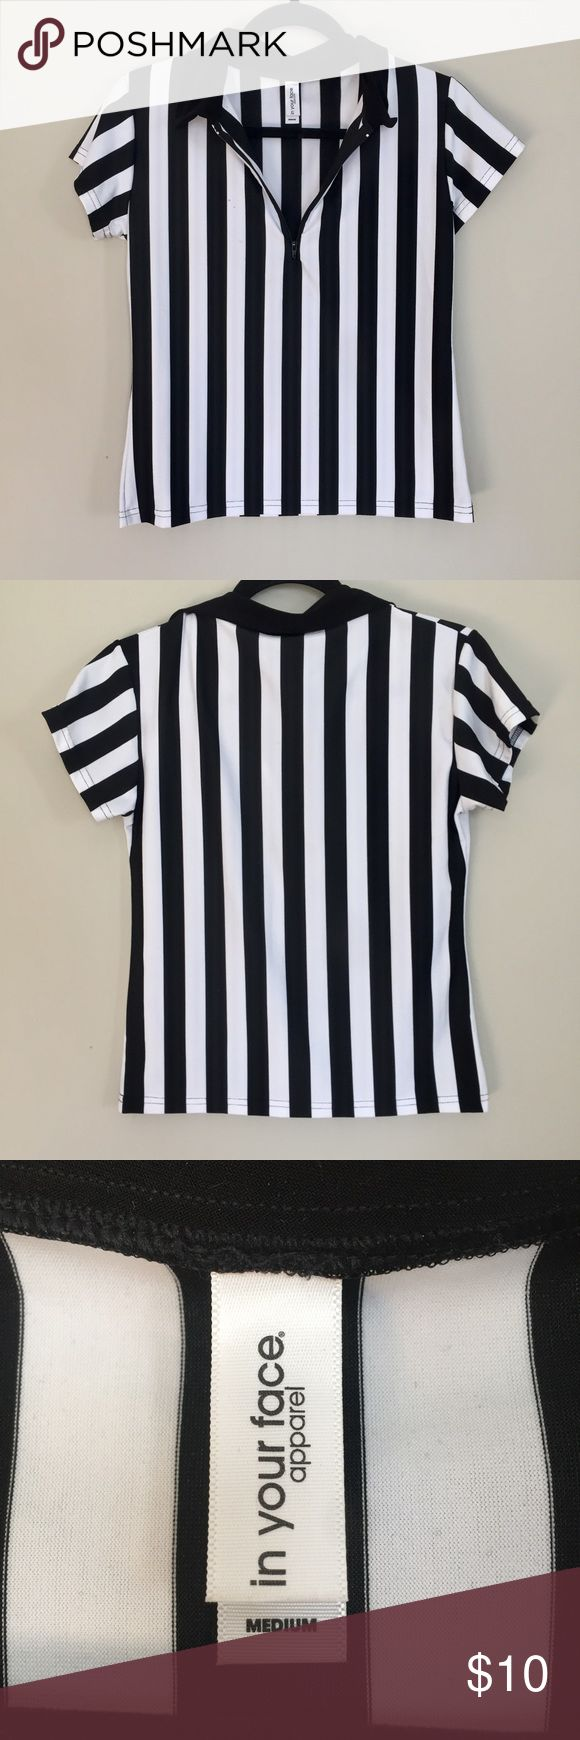 Referee shirt Referee shirt great for work or costume Tops